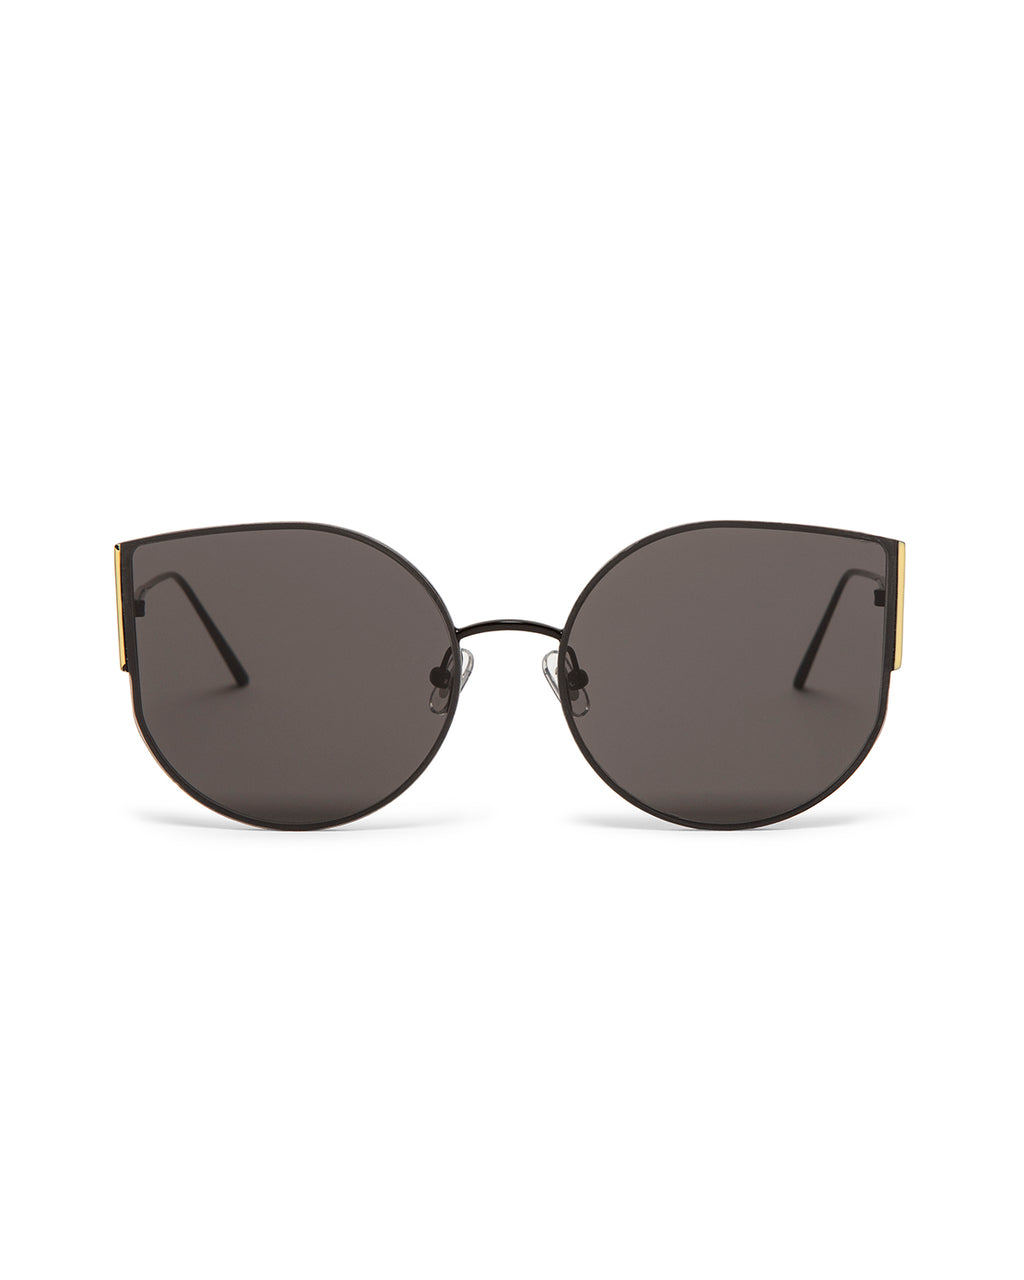 KIWIVISION 2020 Collection, Sunglasses unisex